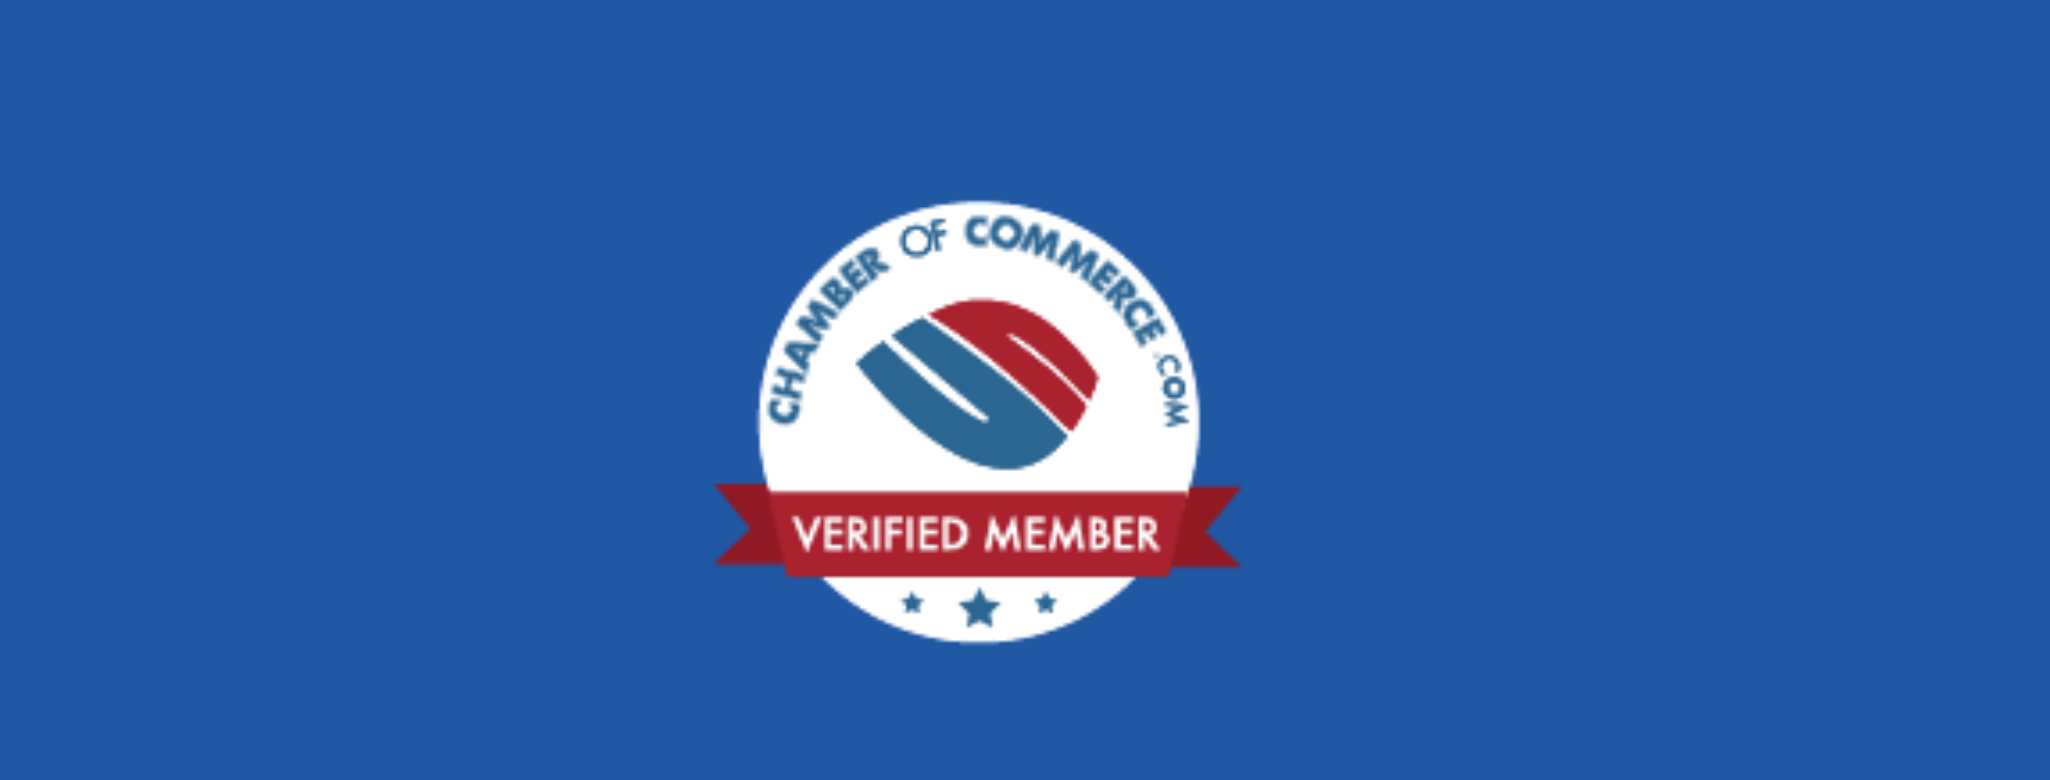 Logo of chamberofcommerce.com. JL Administrative Services LLC. Is a member of the chamberofcommerce.com. JL Administrative Services LLC provides virtual administrative support including personal assistants, accounting, management and general secretarial support.